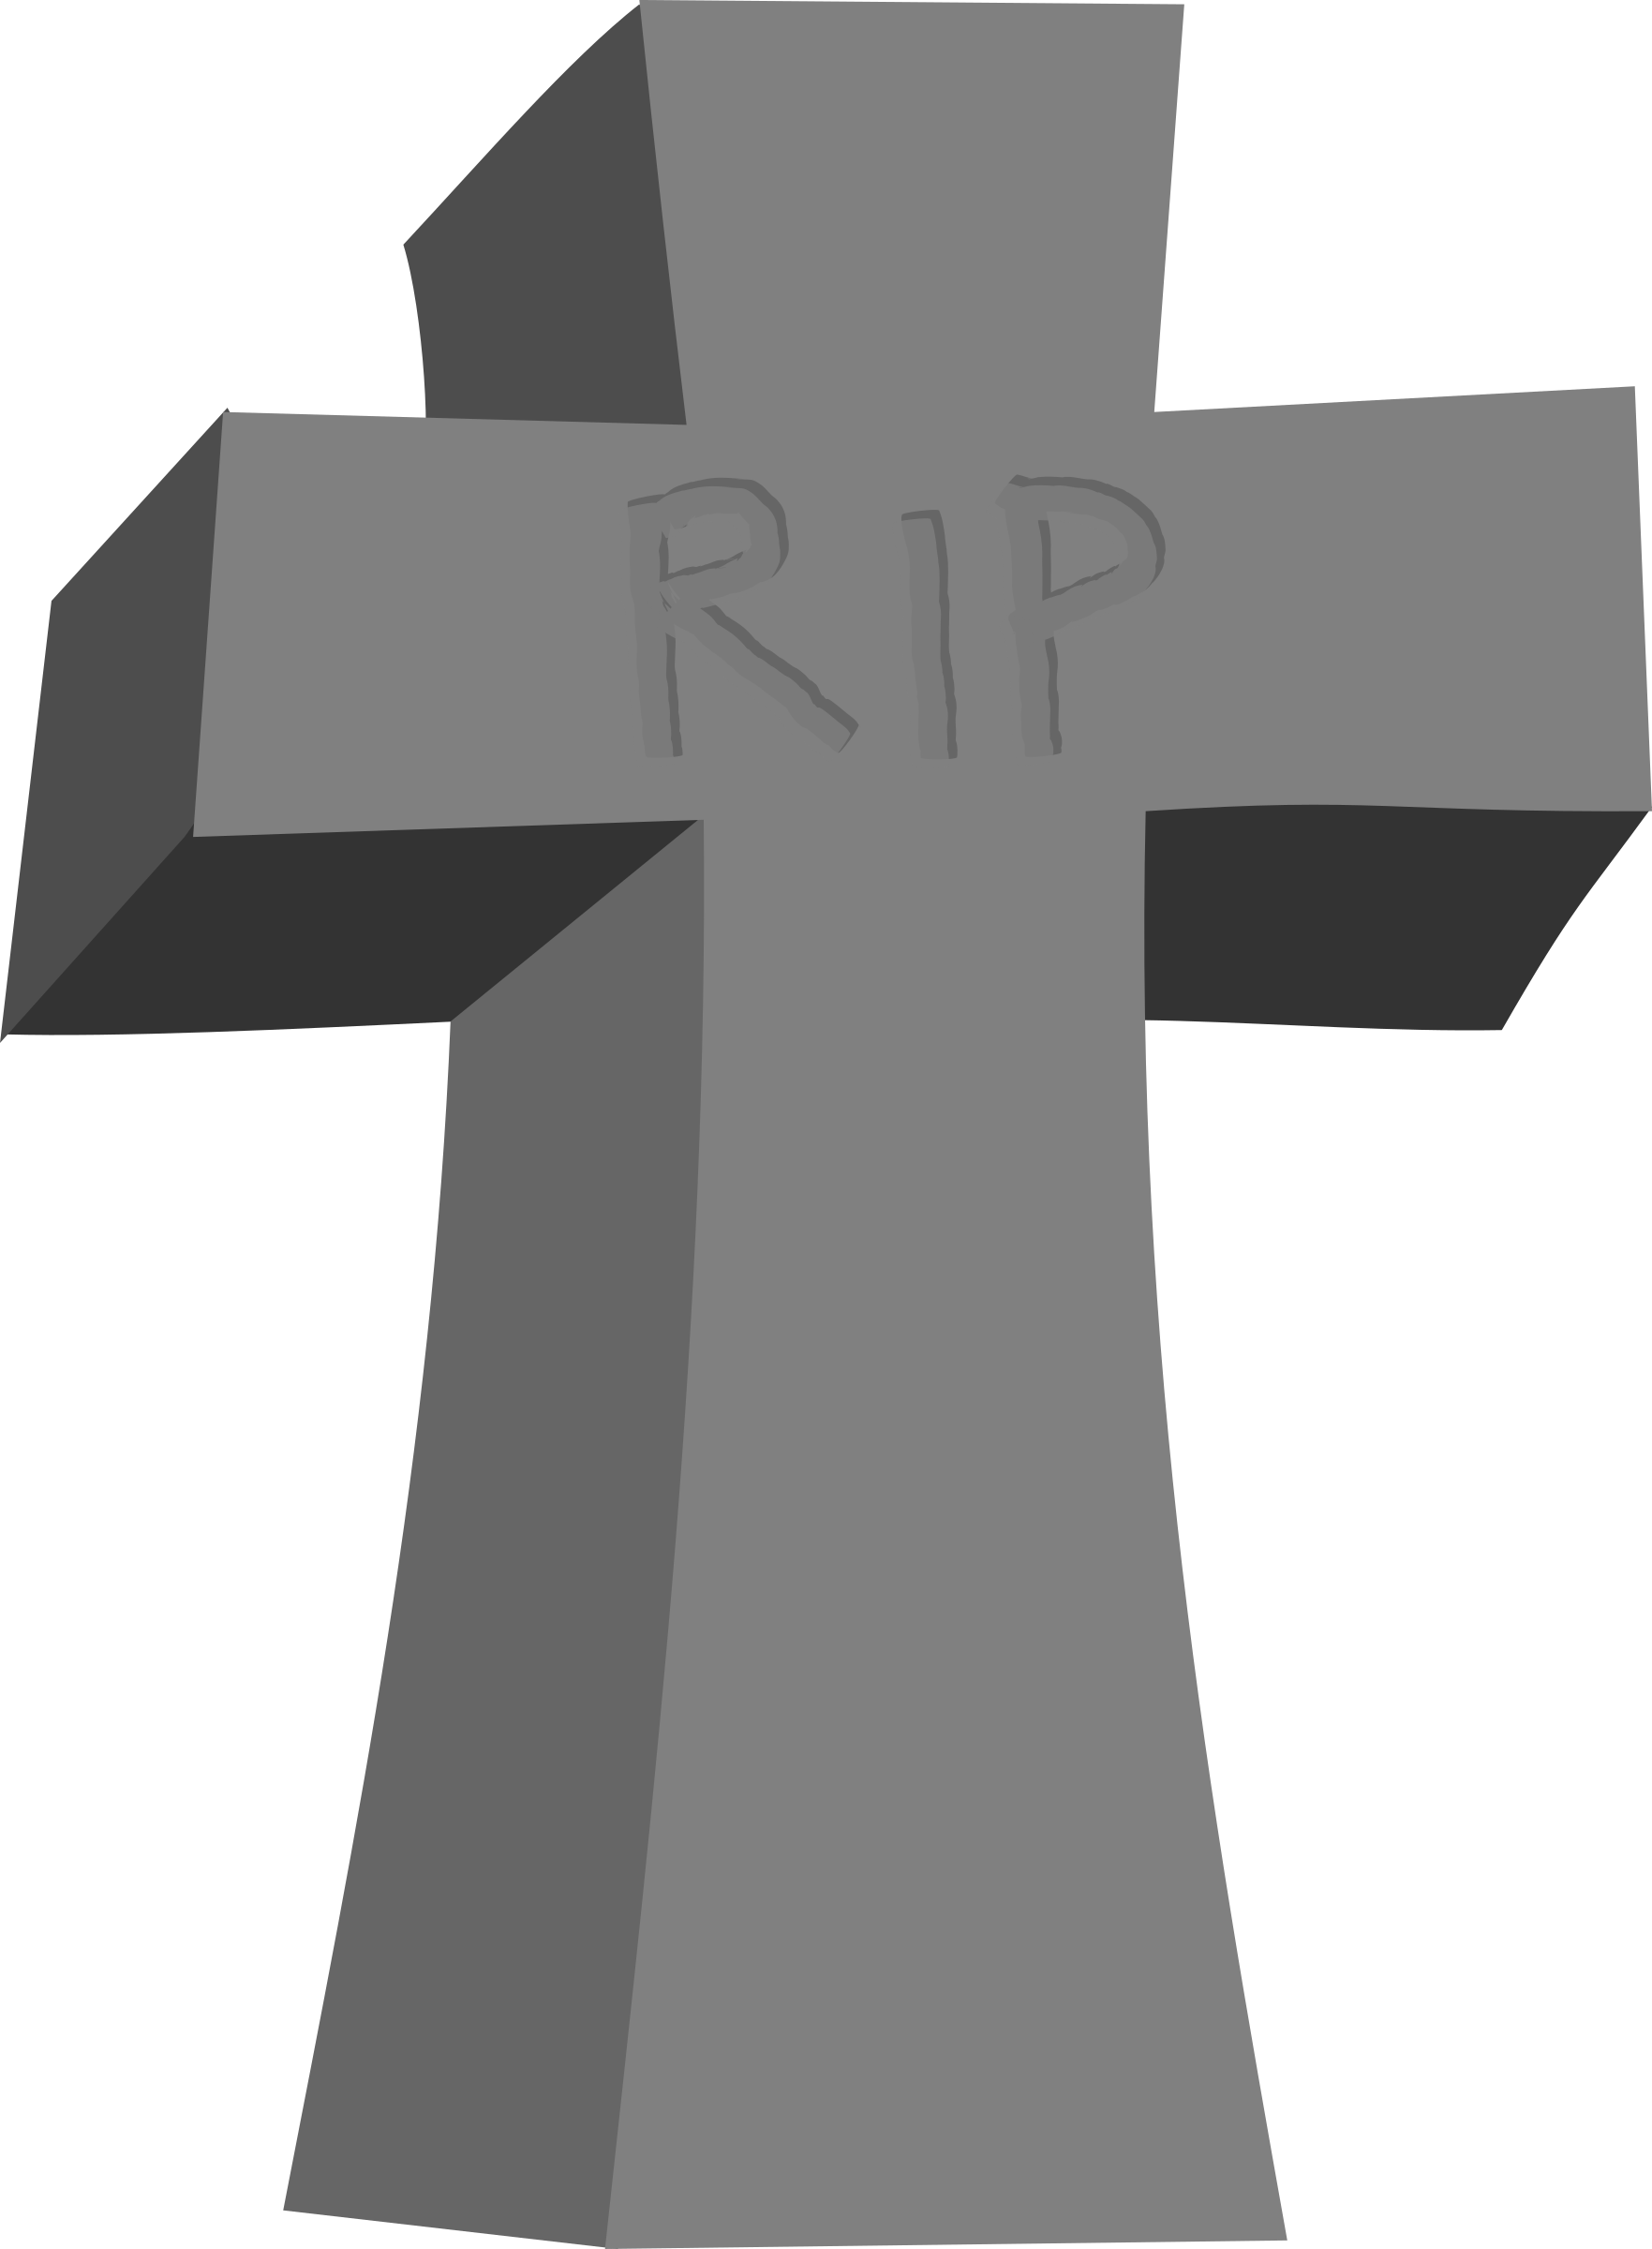 Rip clipart vector. Tombstone big image png